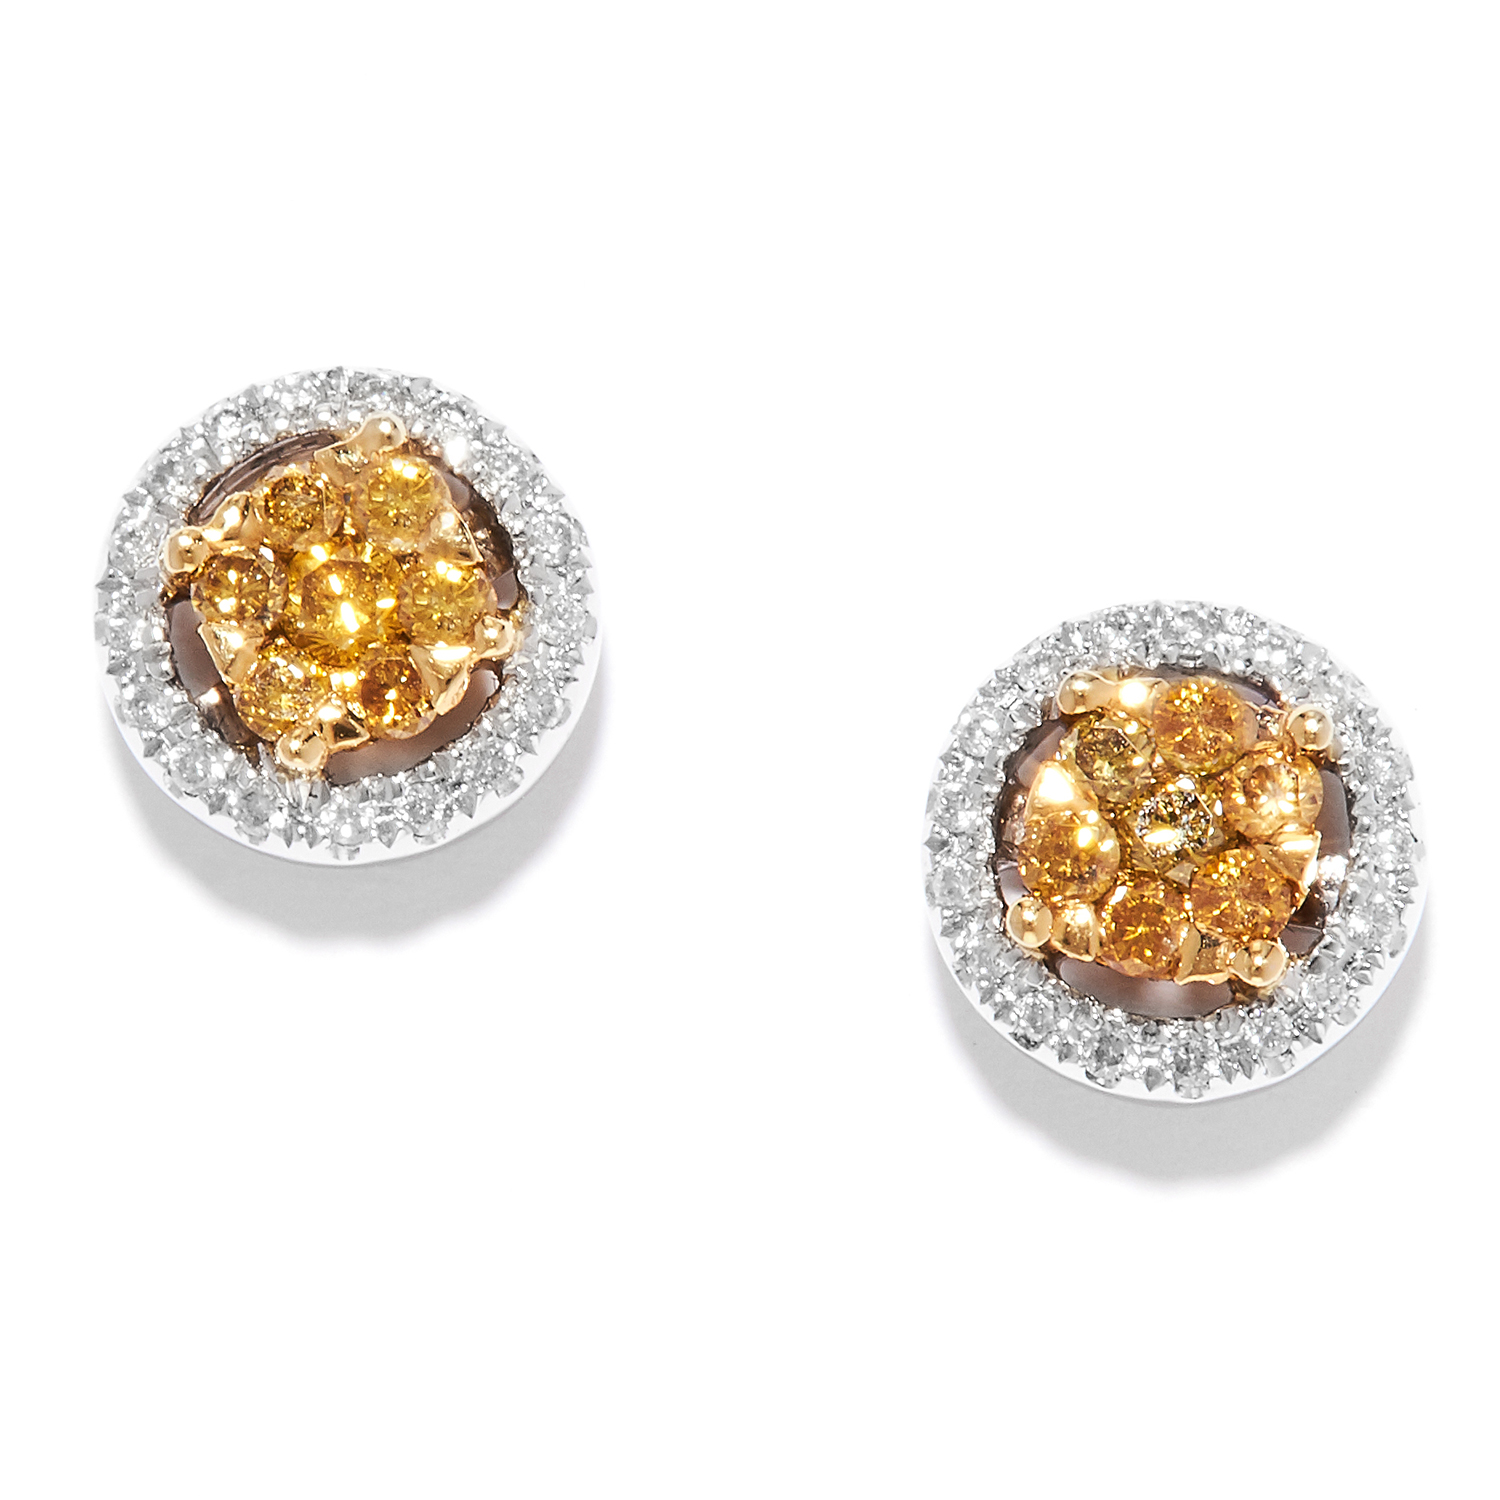 YELLOW AND WHITE DIAMOND STUD EARRINGS in 18ct gold, set with clusters of yellow diamonds within